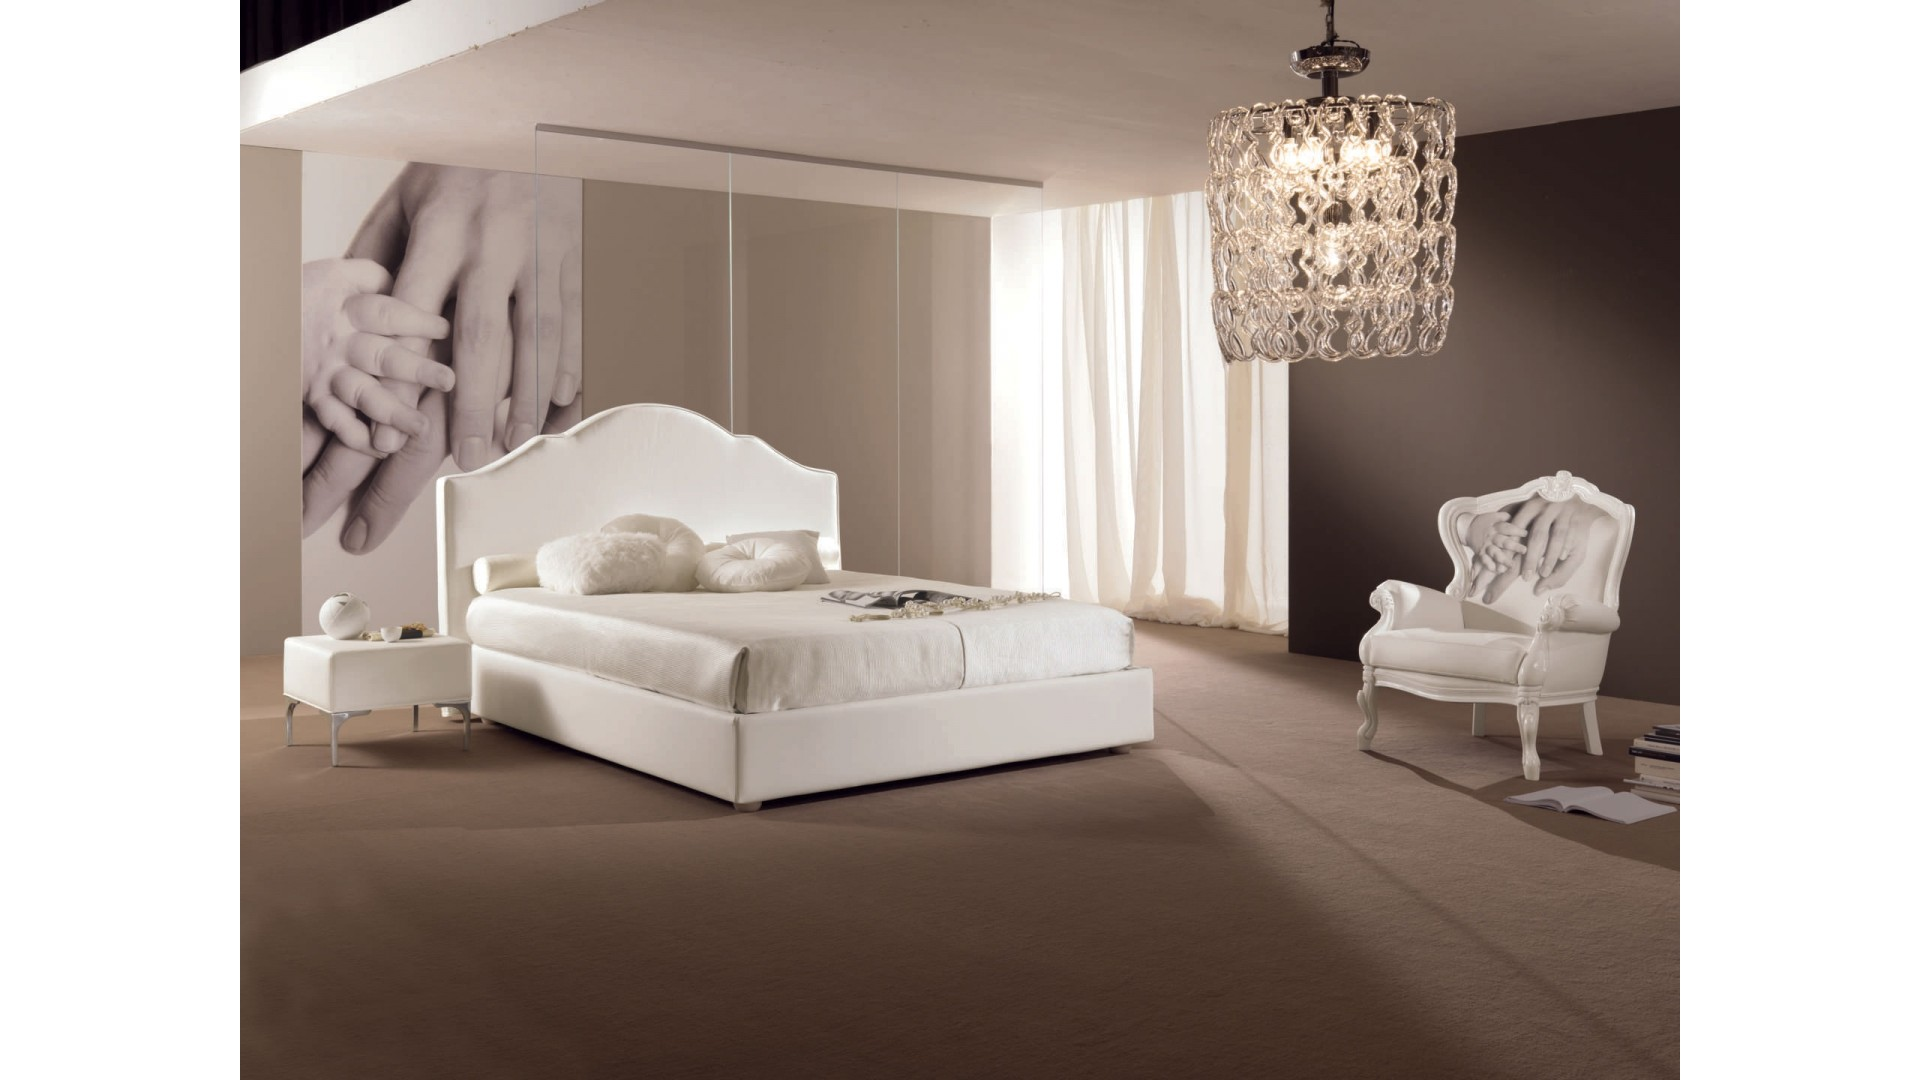 Lit Double Chambre A Coucher Personnalisable Aymeric Piermaria